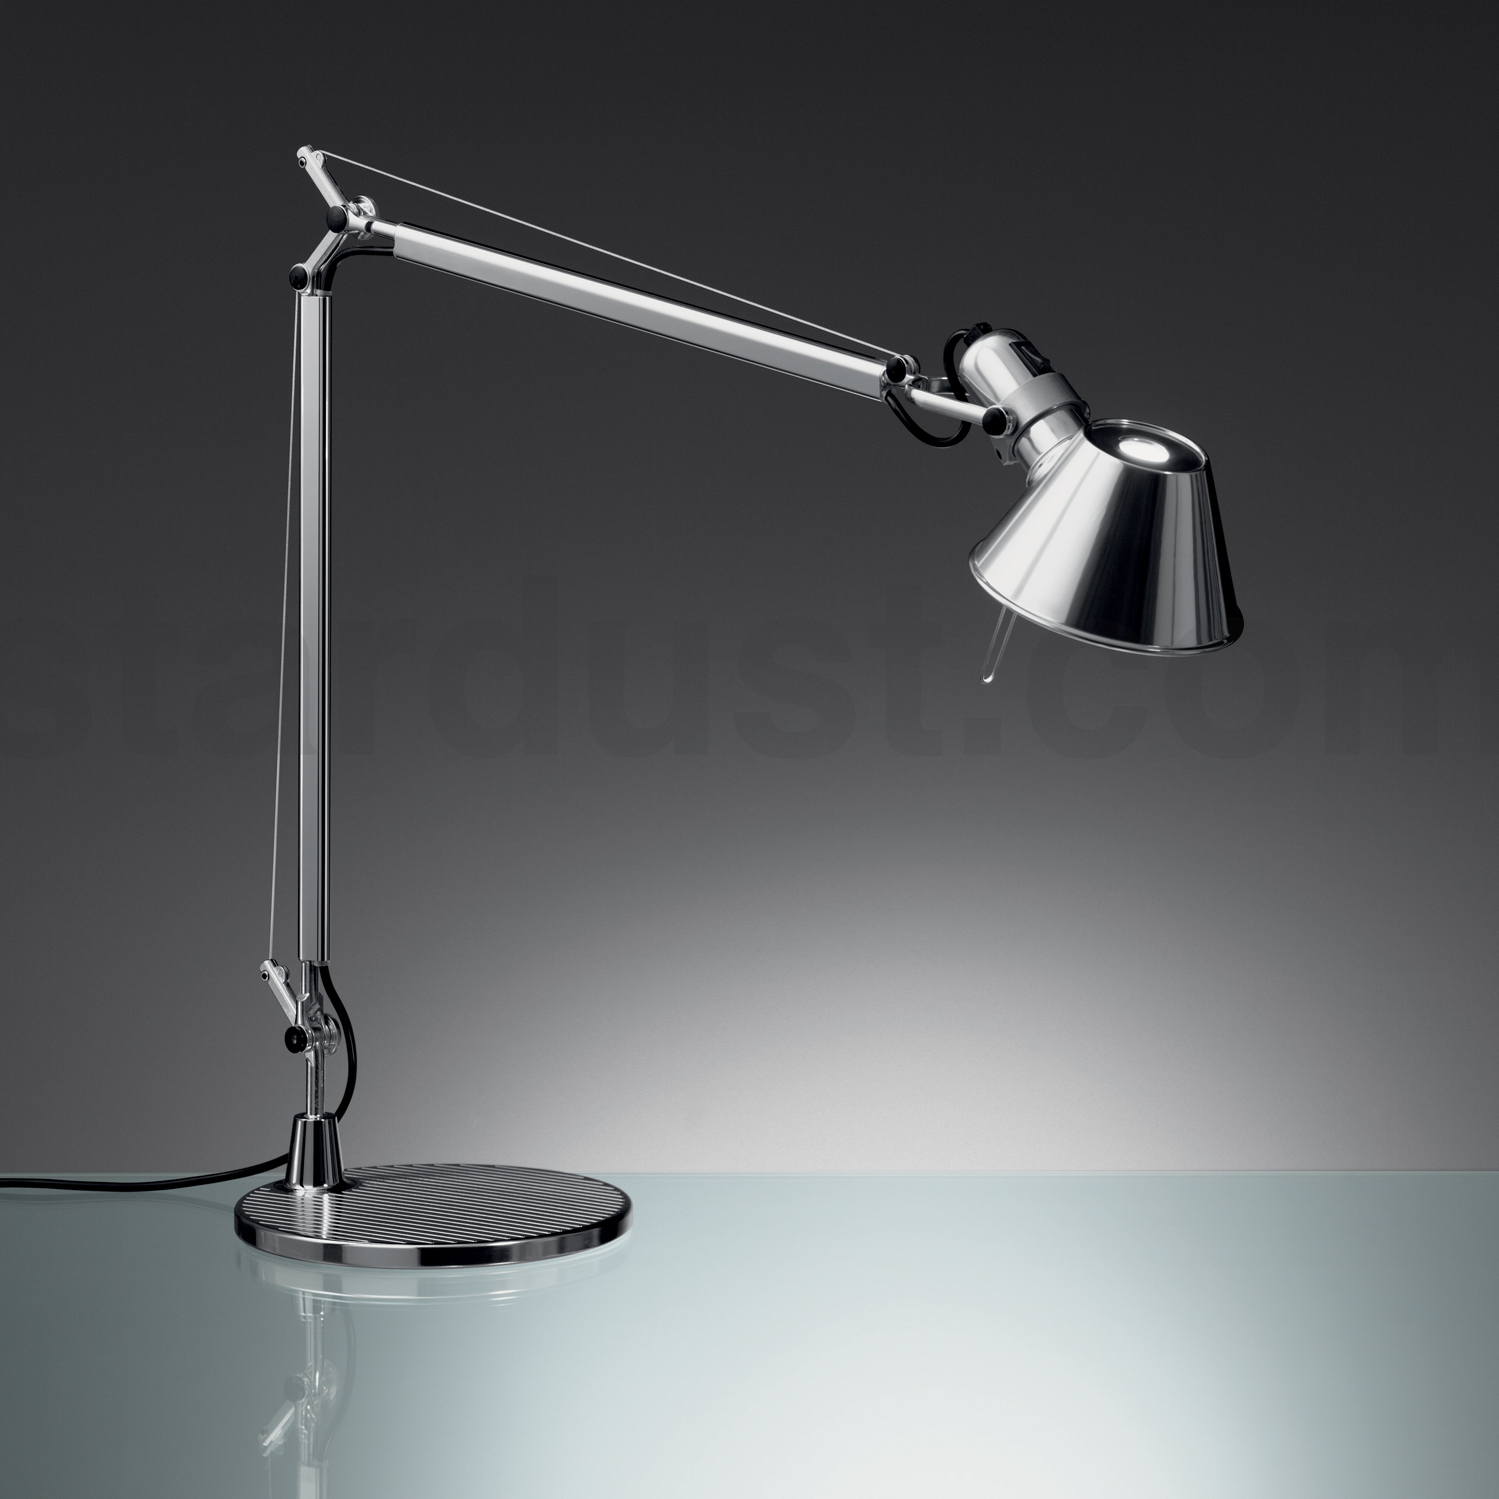 Architecture Desk Lamp Contemporary Chrome Flexible Desk Lamp